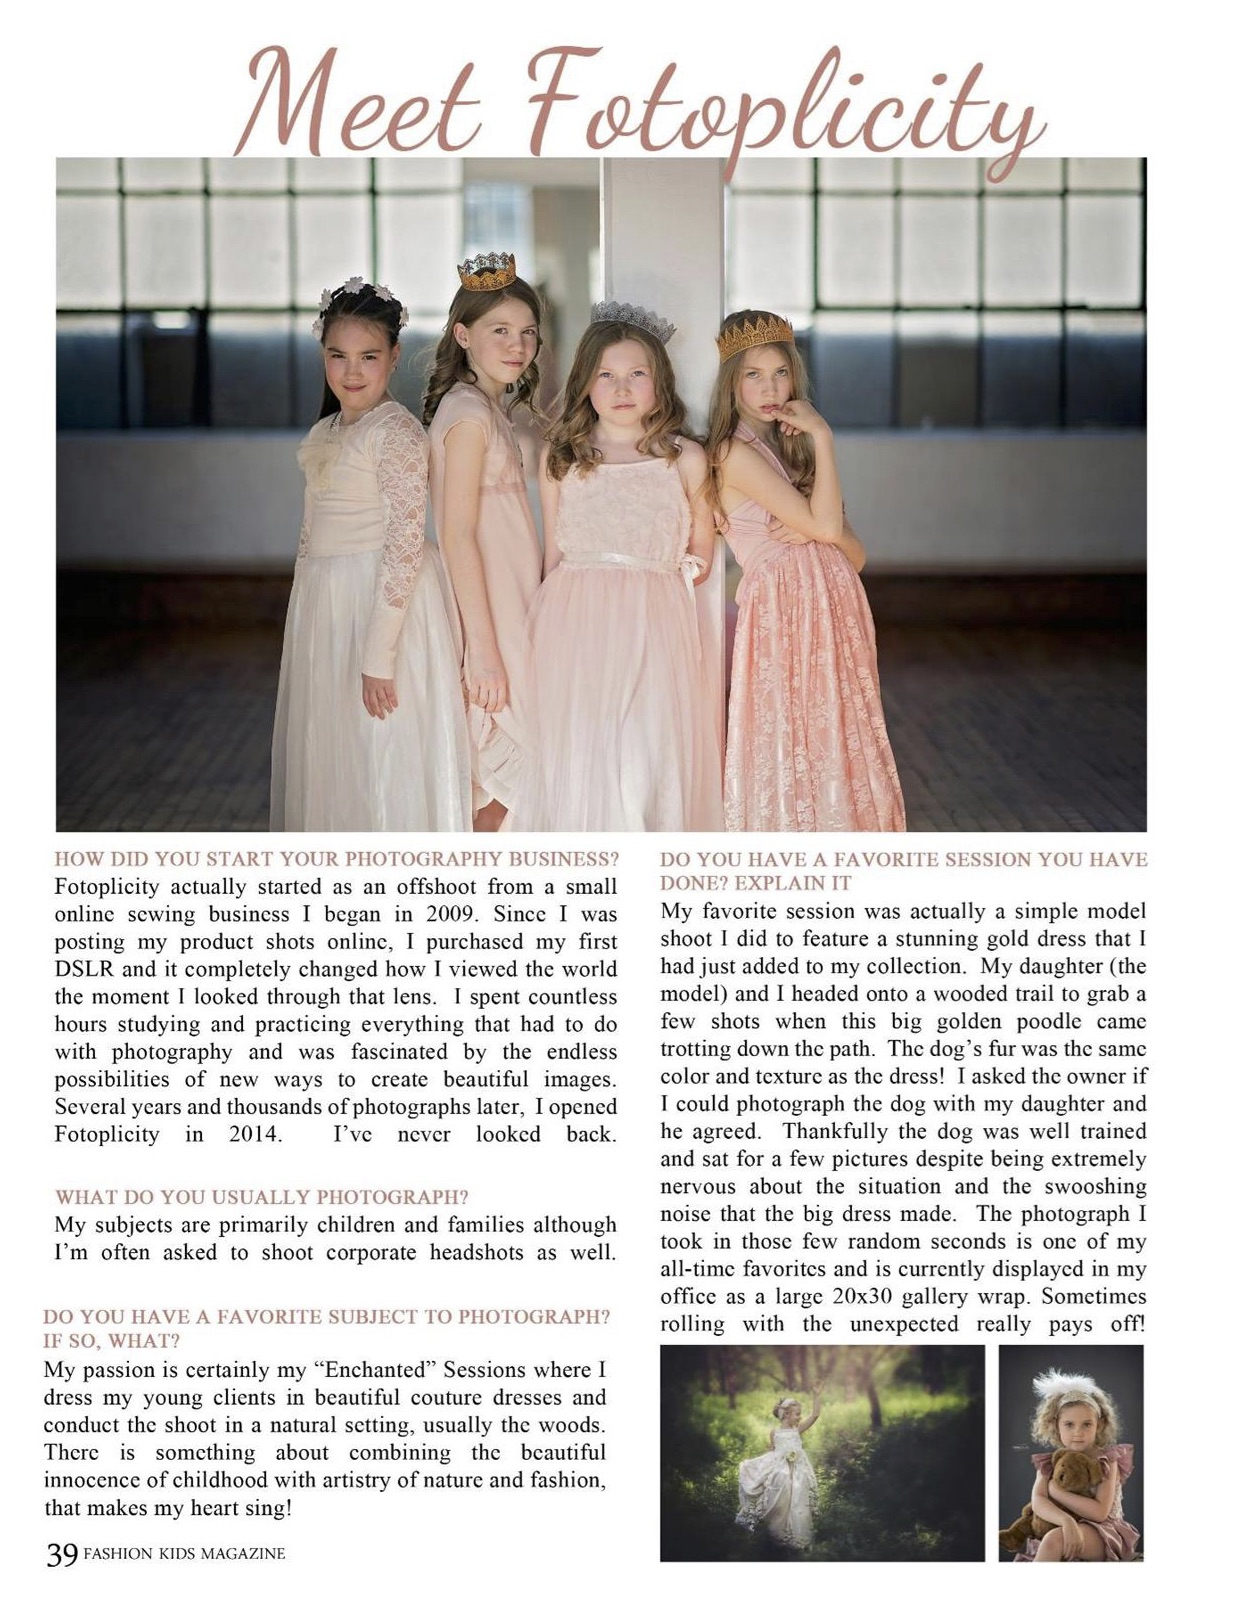 Young Fashion Kids Interview